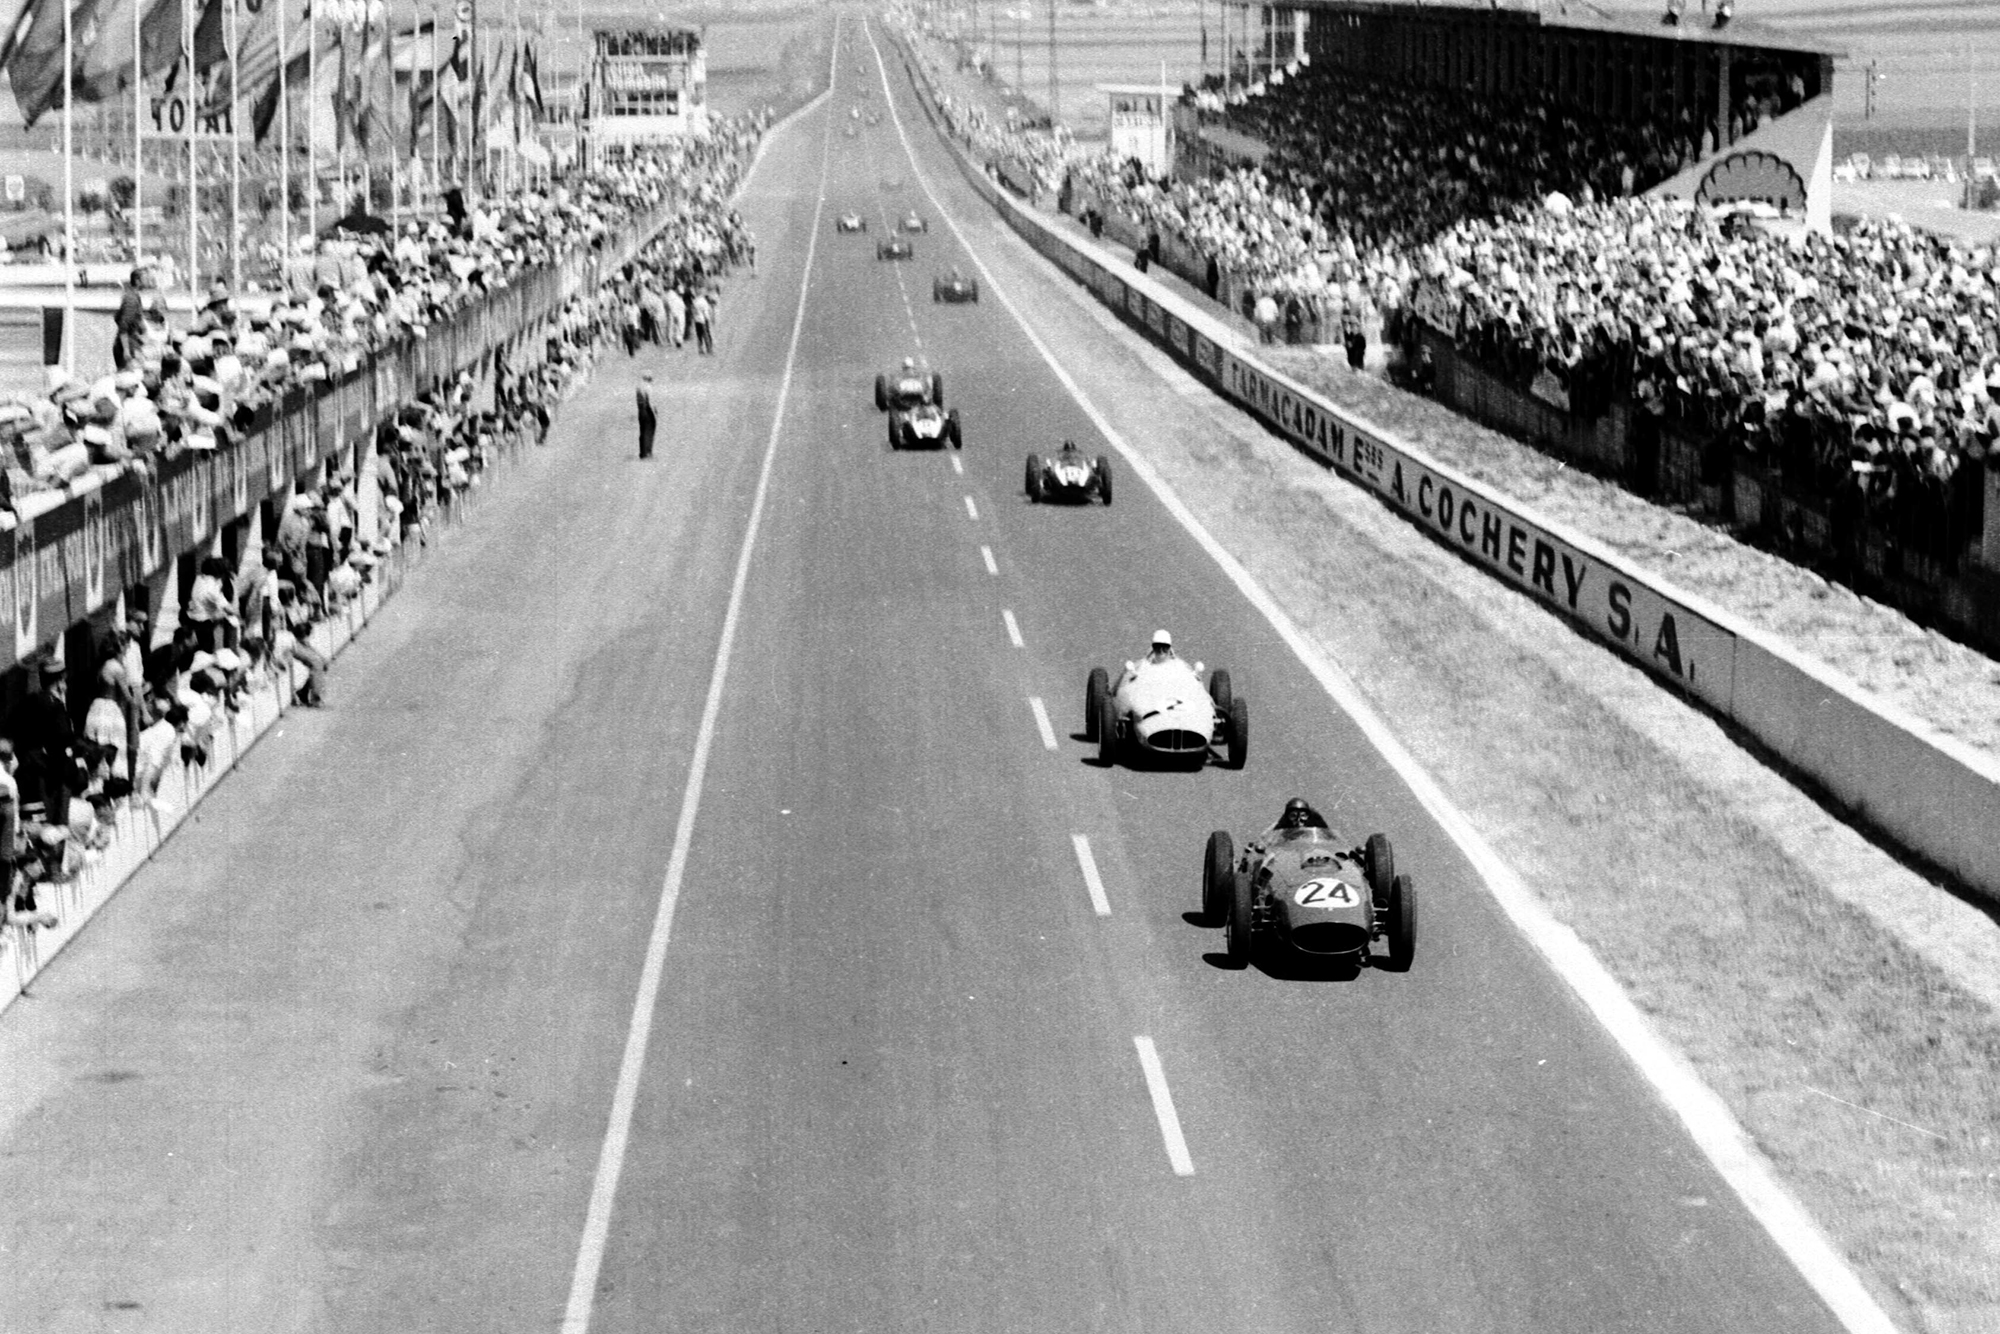 Tony Brooks (Ferrari Dino 246) leads Stirling Moss (BRM P25) and the field past the grandstands and pits.